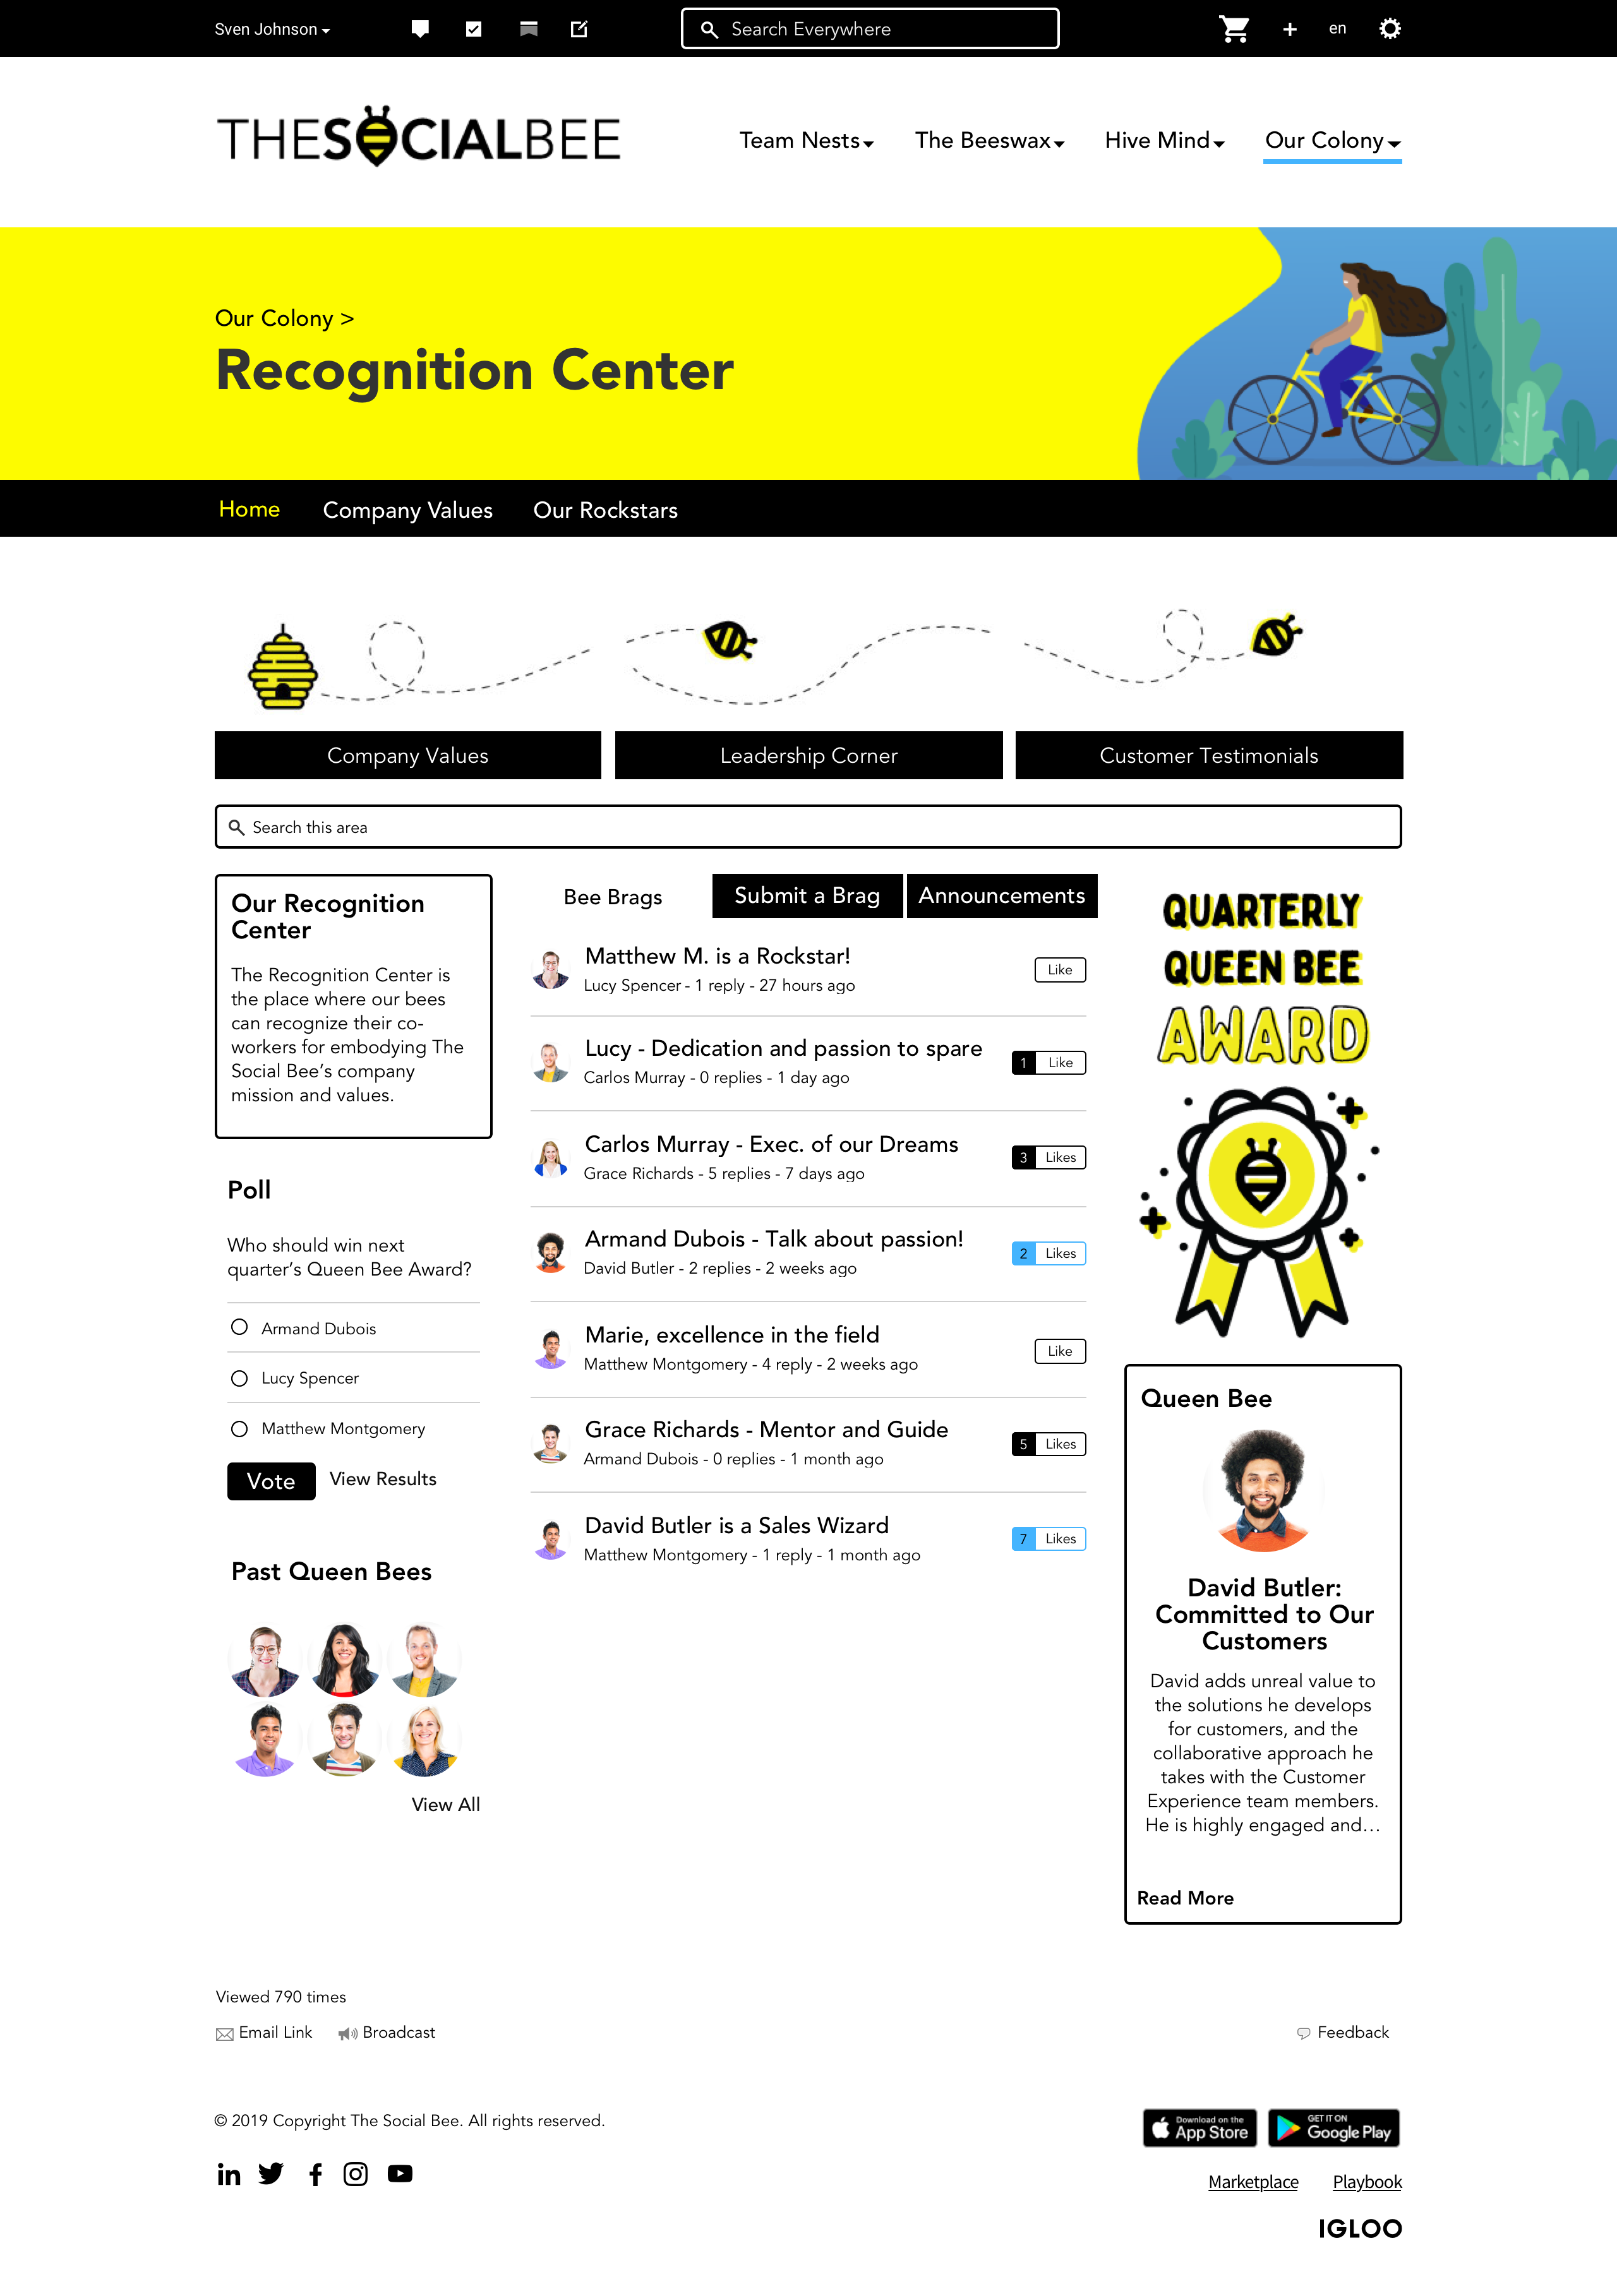 Recognition Center Home